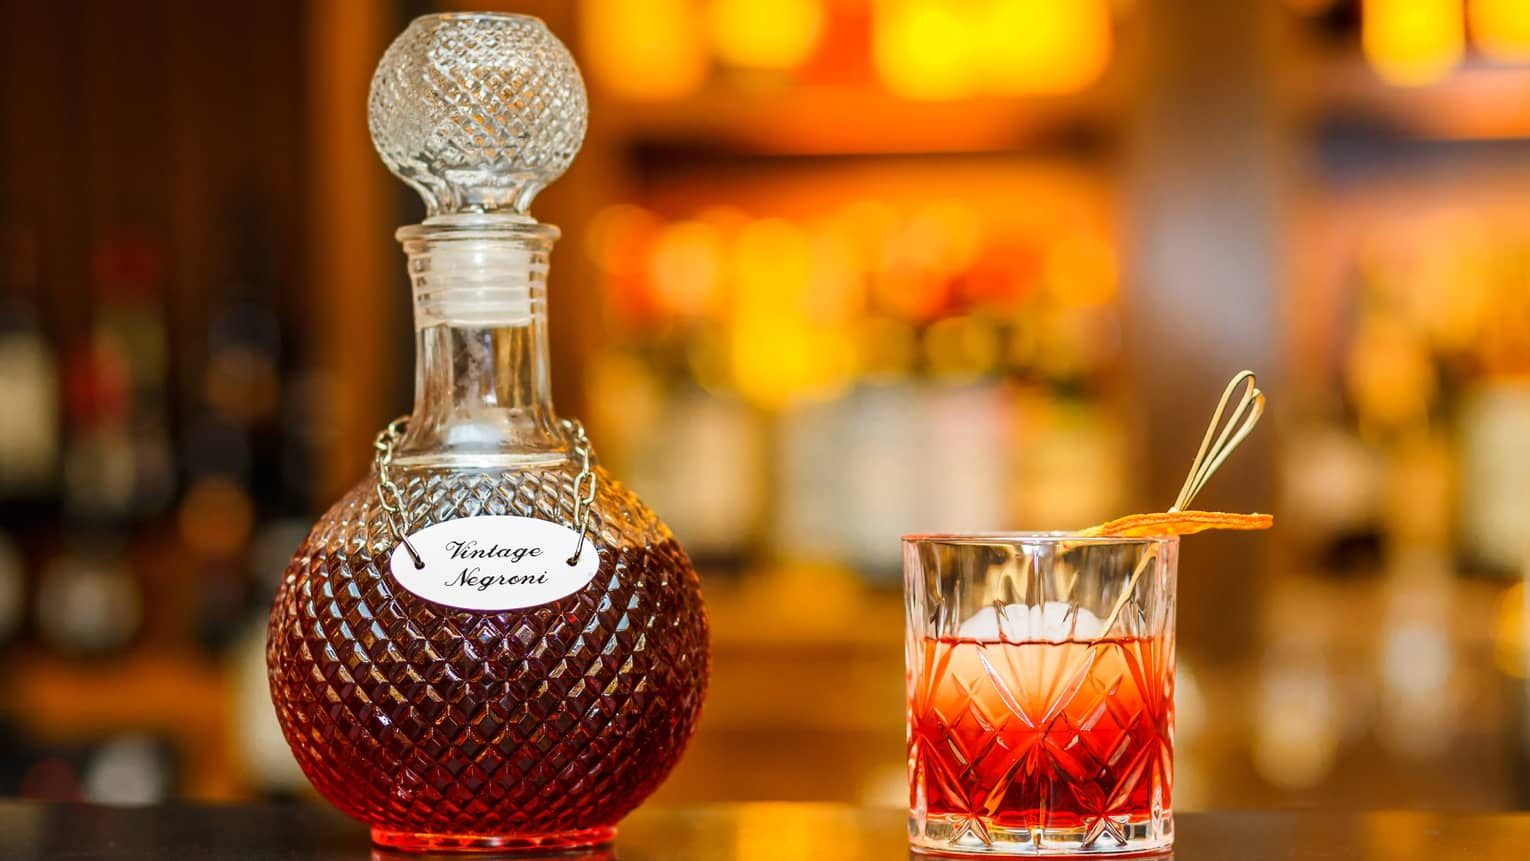 Vintage Negroni liquor in crystal bottle beside cocktail in rock glass